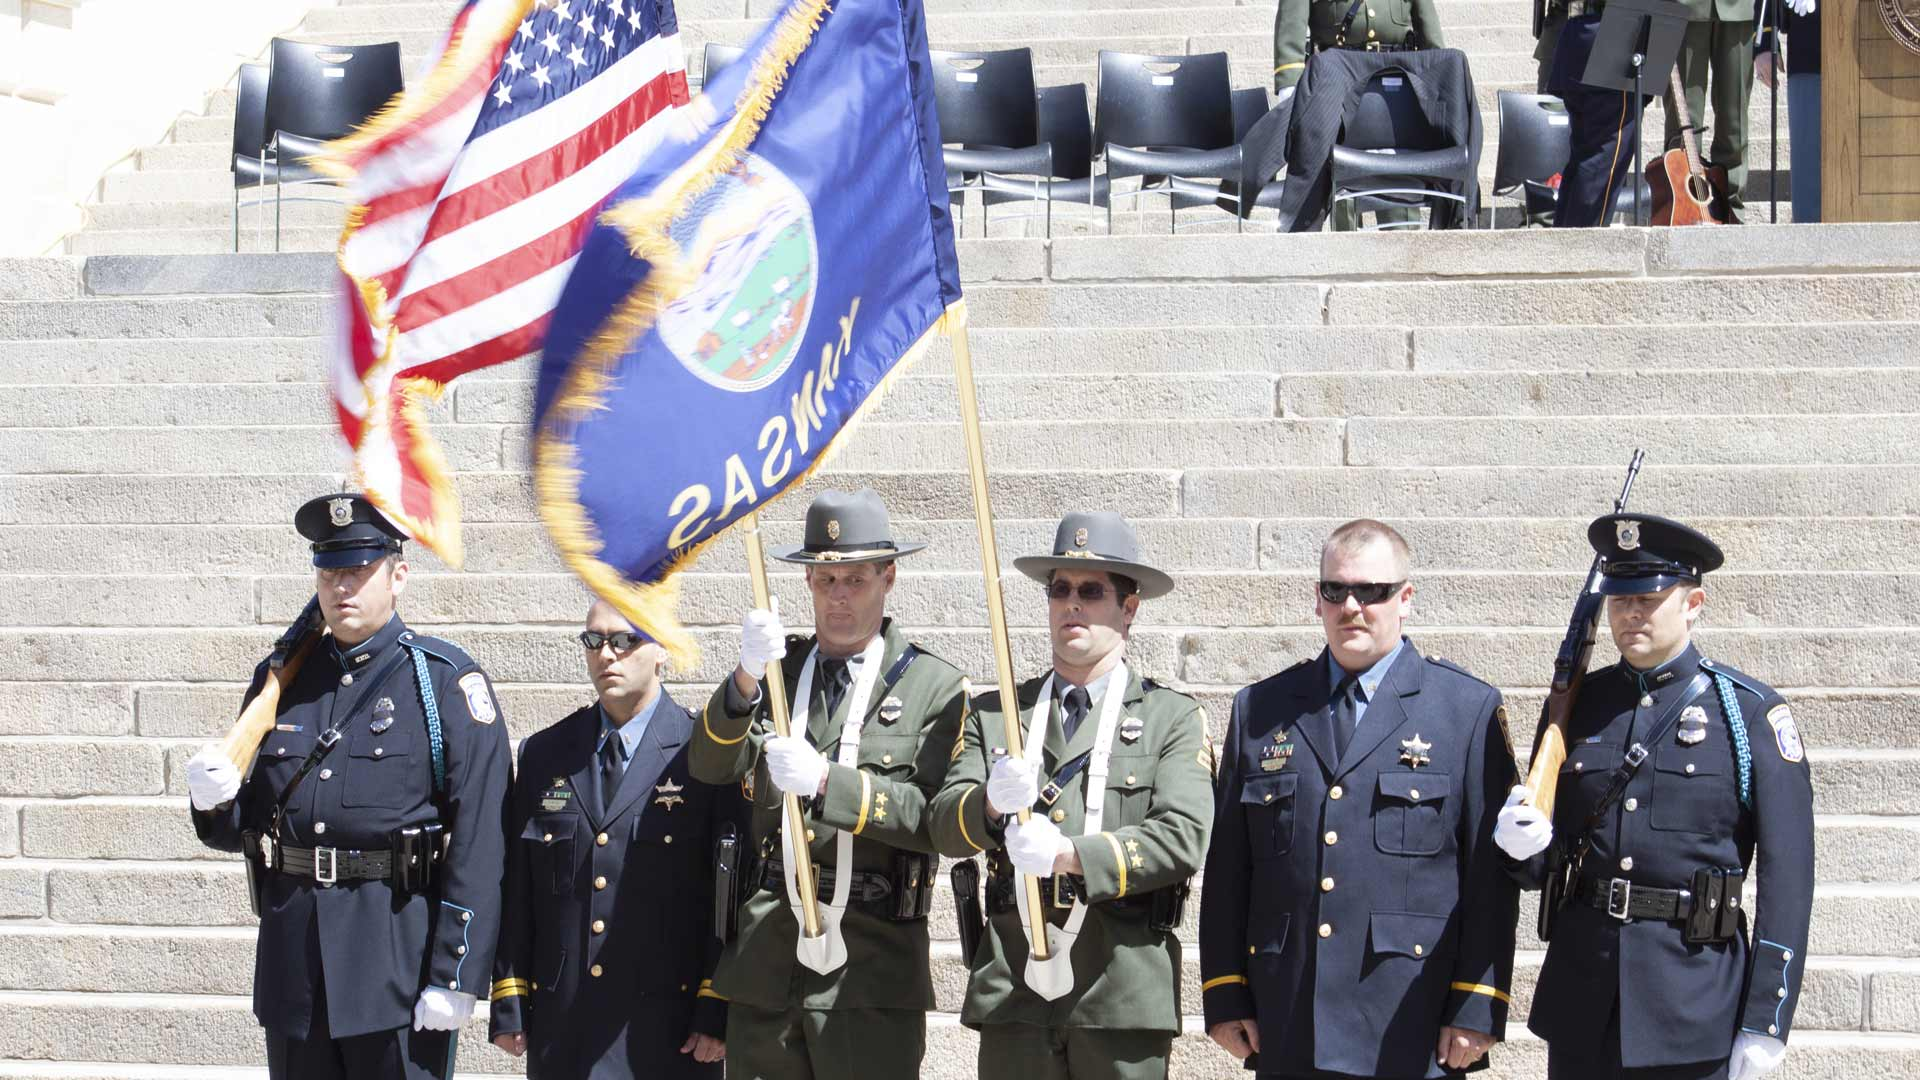 Officers and flags Layer-28